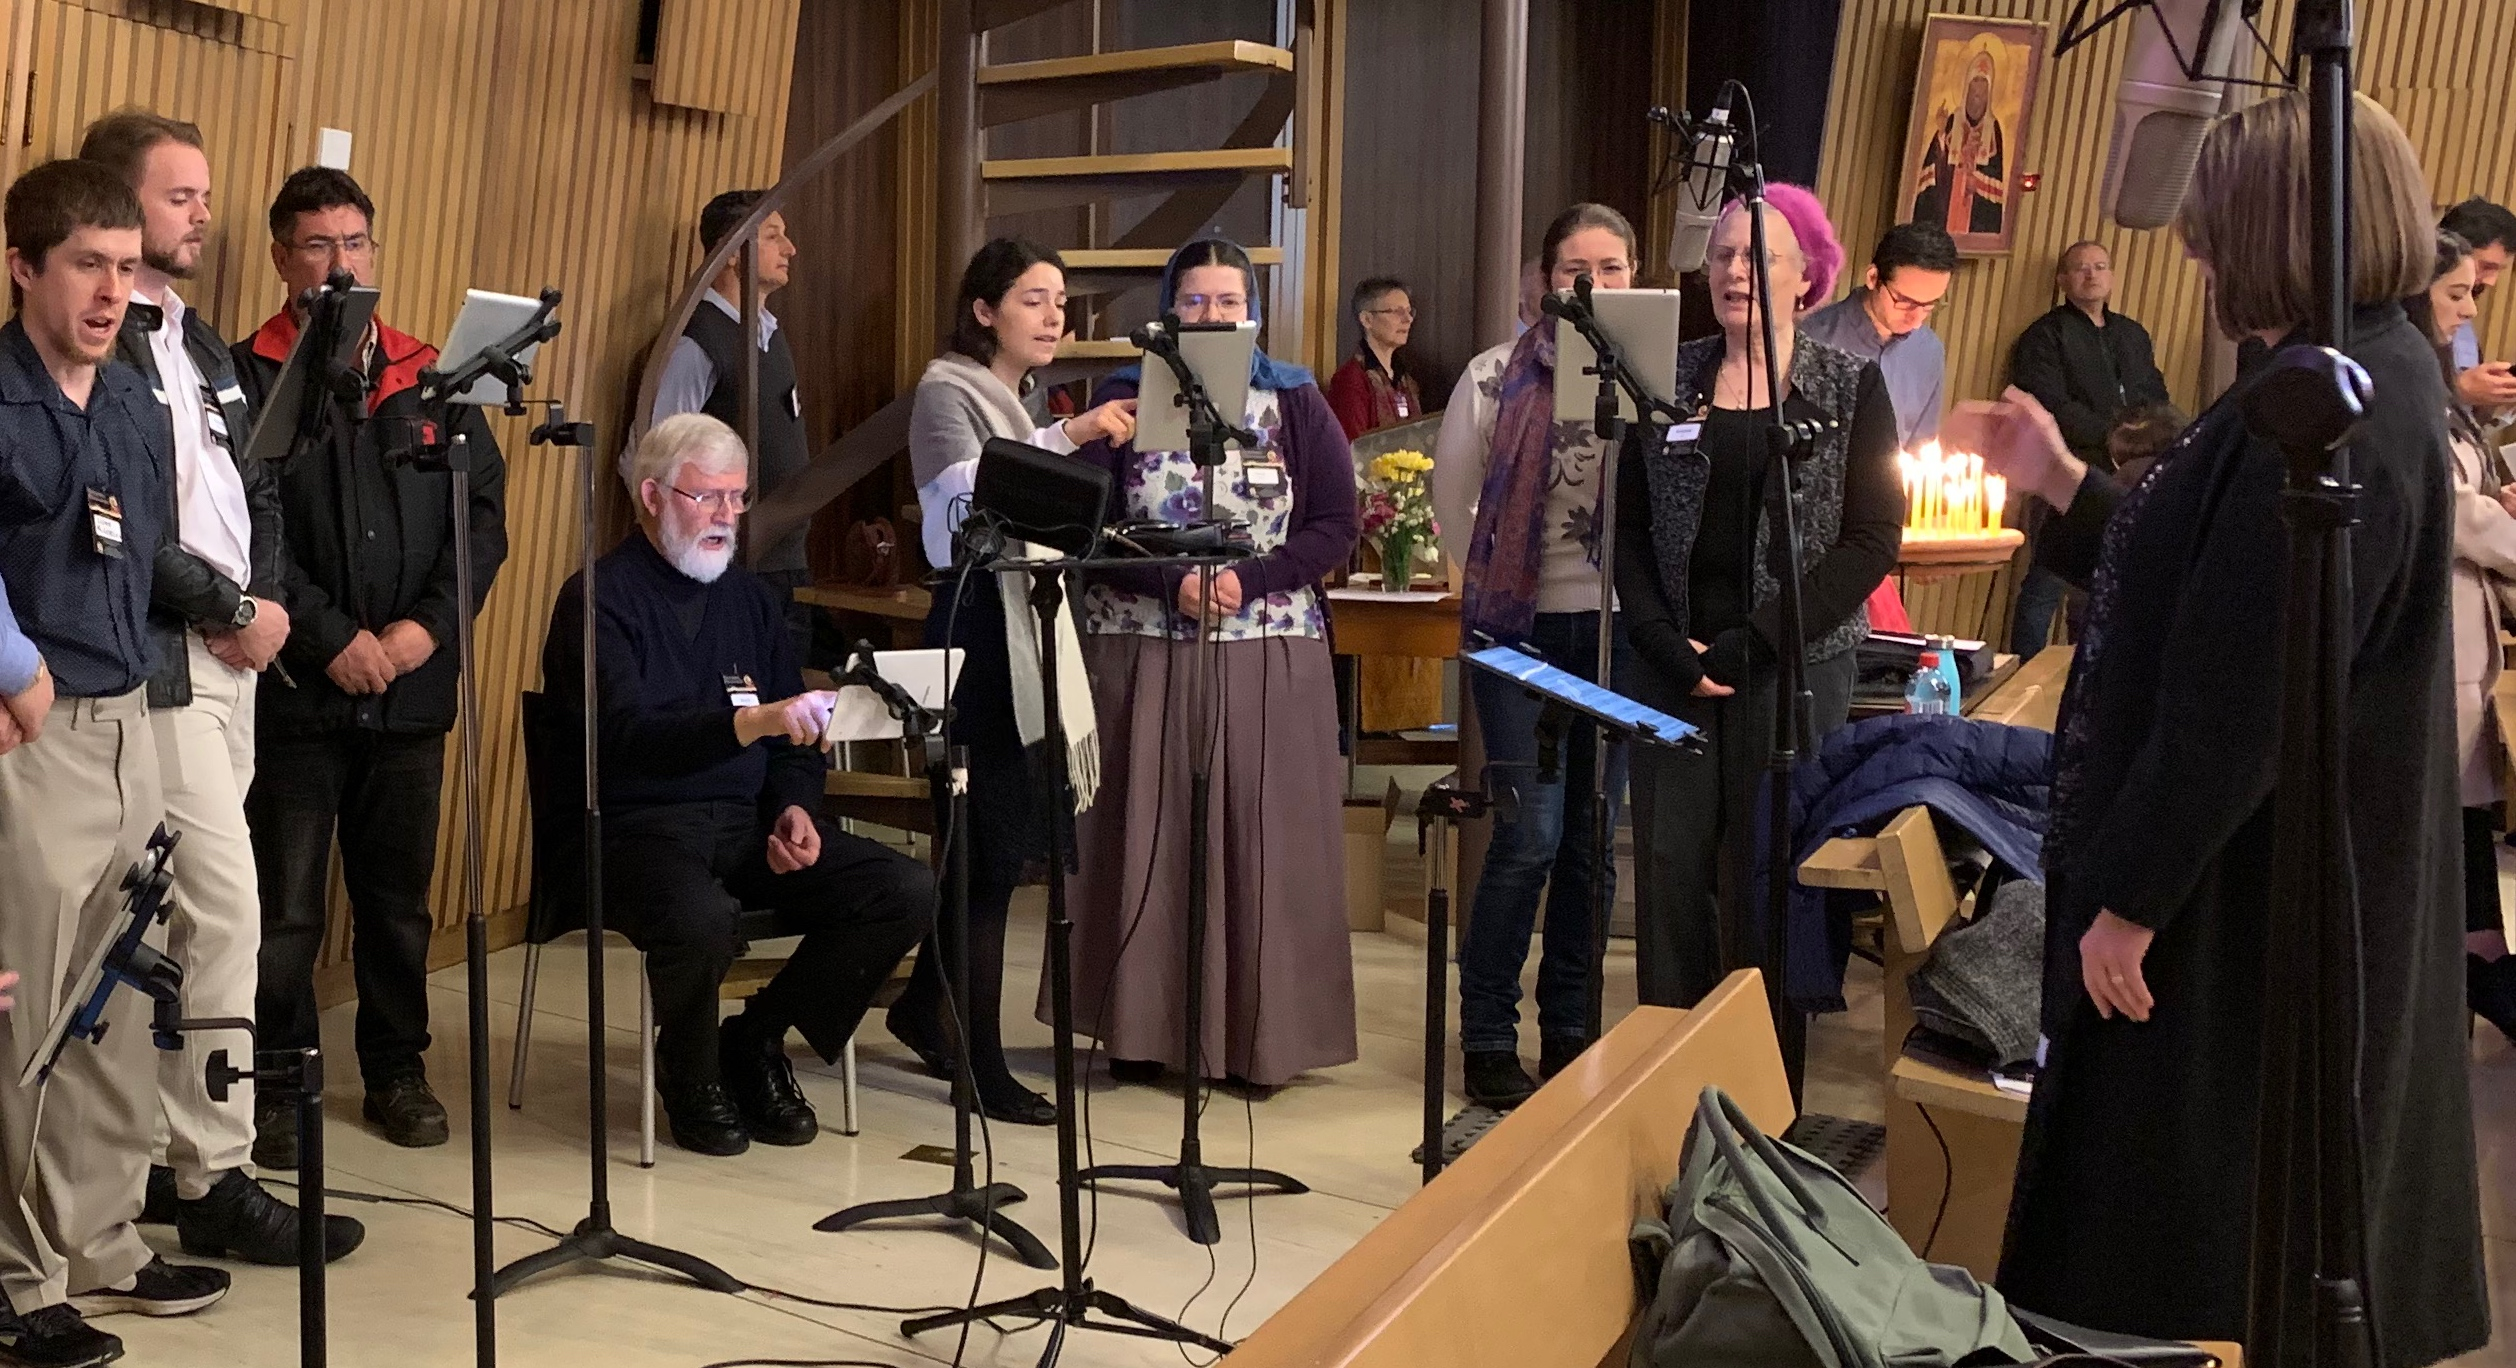 The Good Shepherd Choir at Exploring Orthodoxy 2019